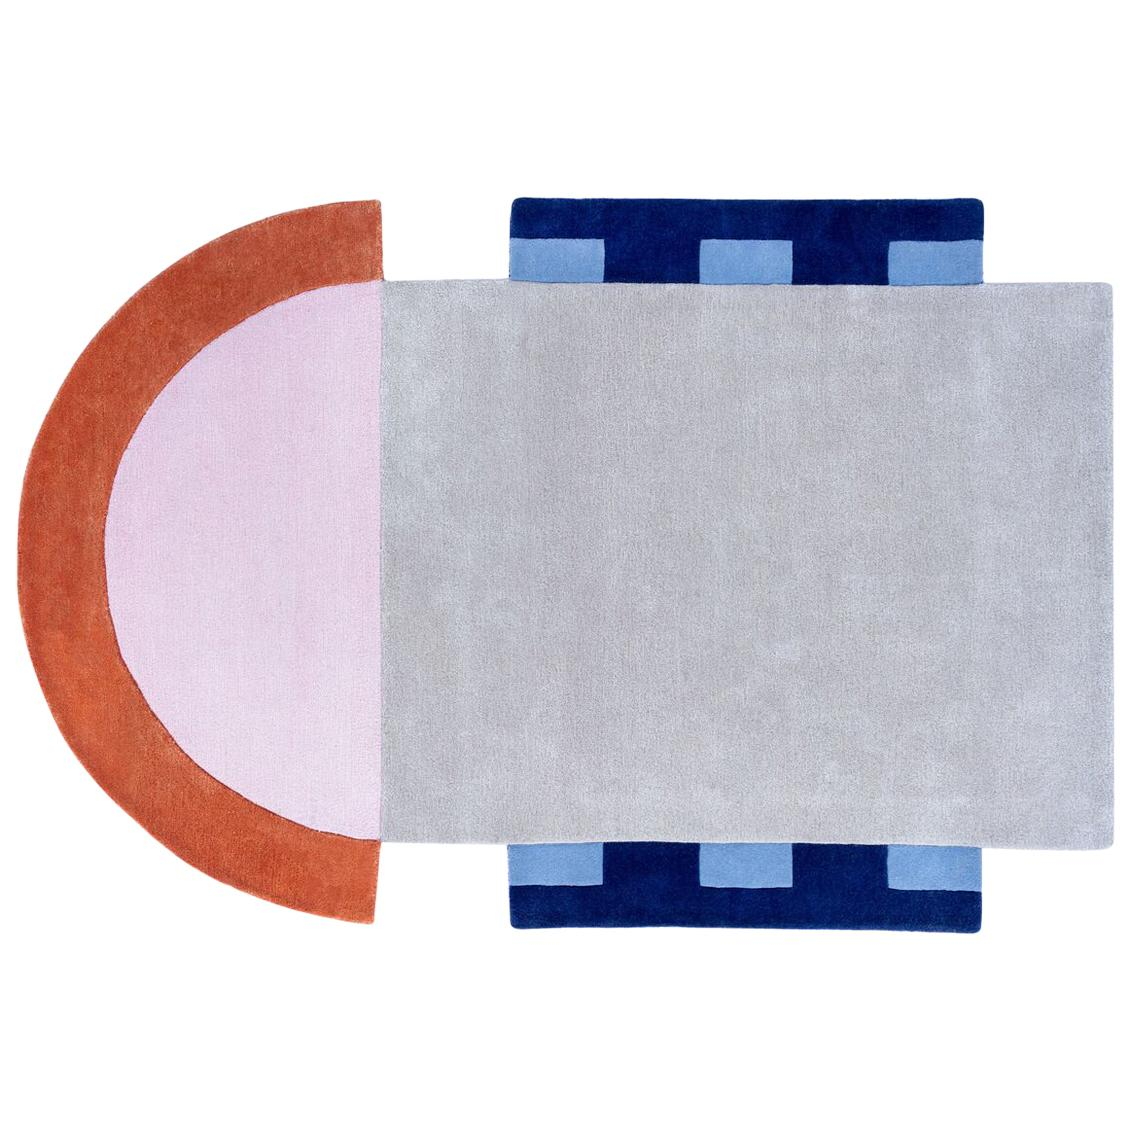 """""""Court Series"""" Abstract Key Rug by Pieces, Hand-Tufted Colorful Sporty Carpet"""